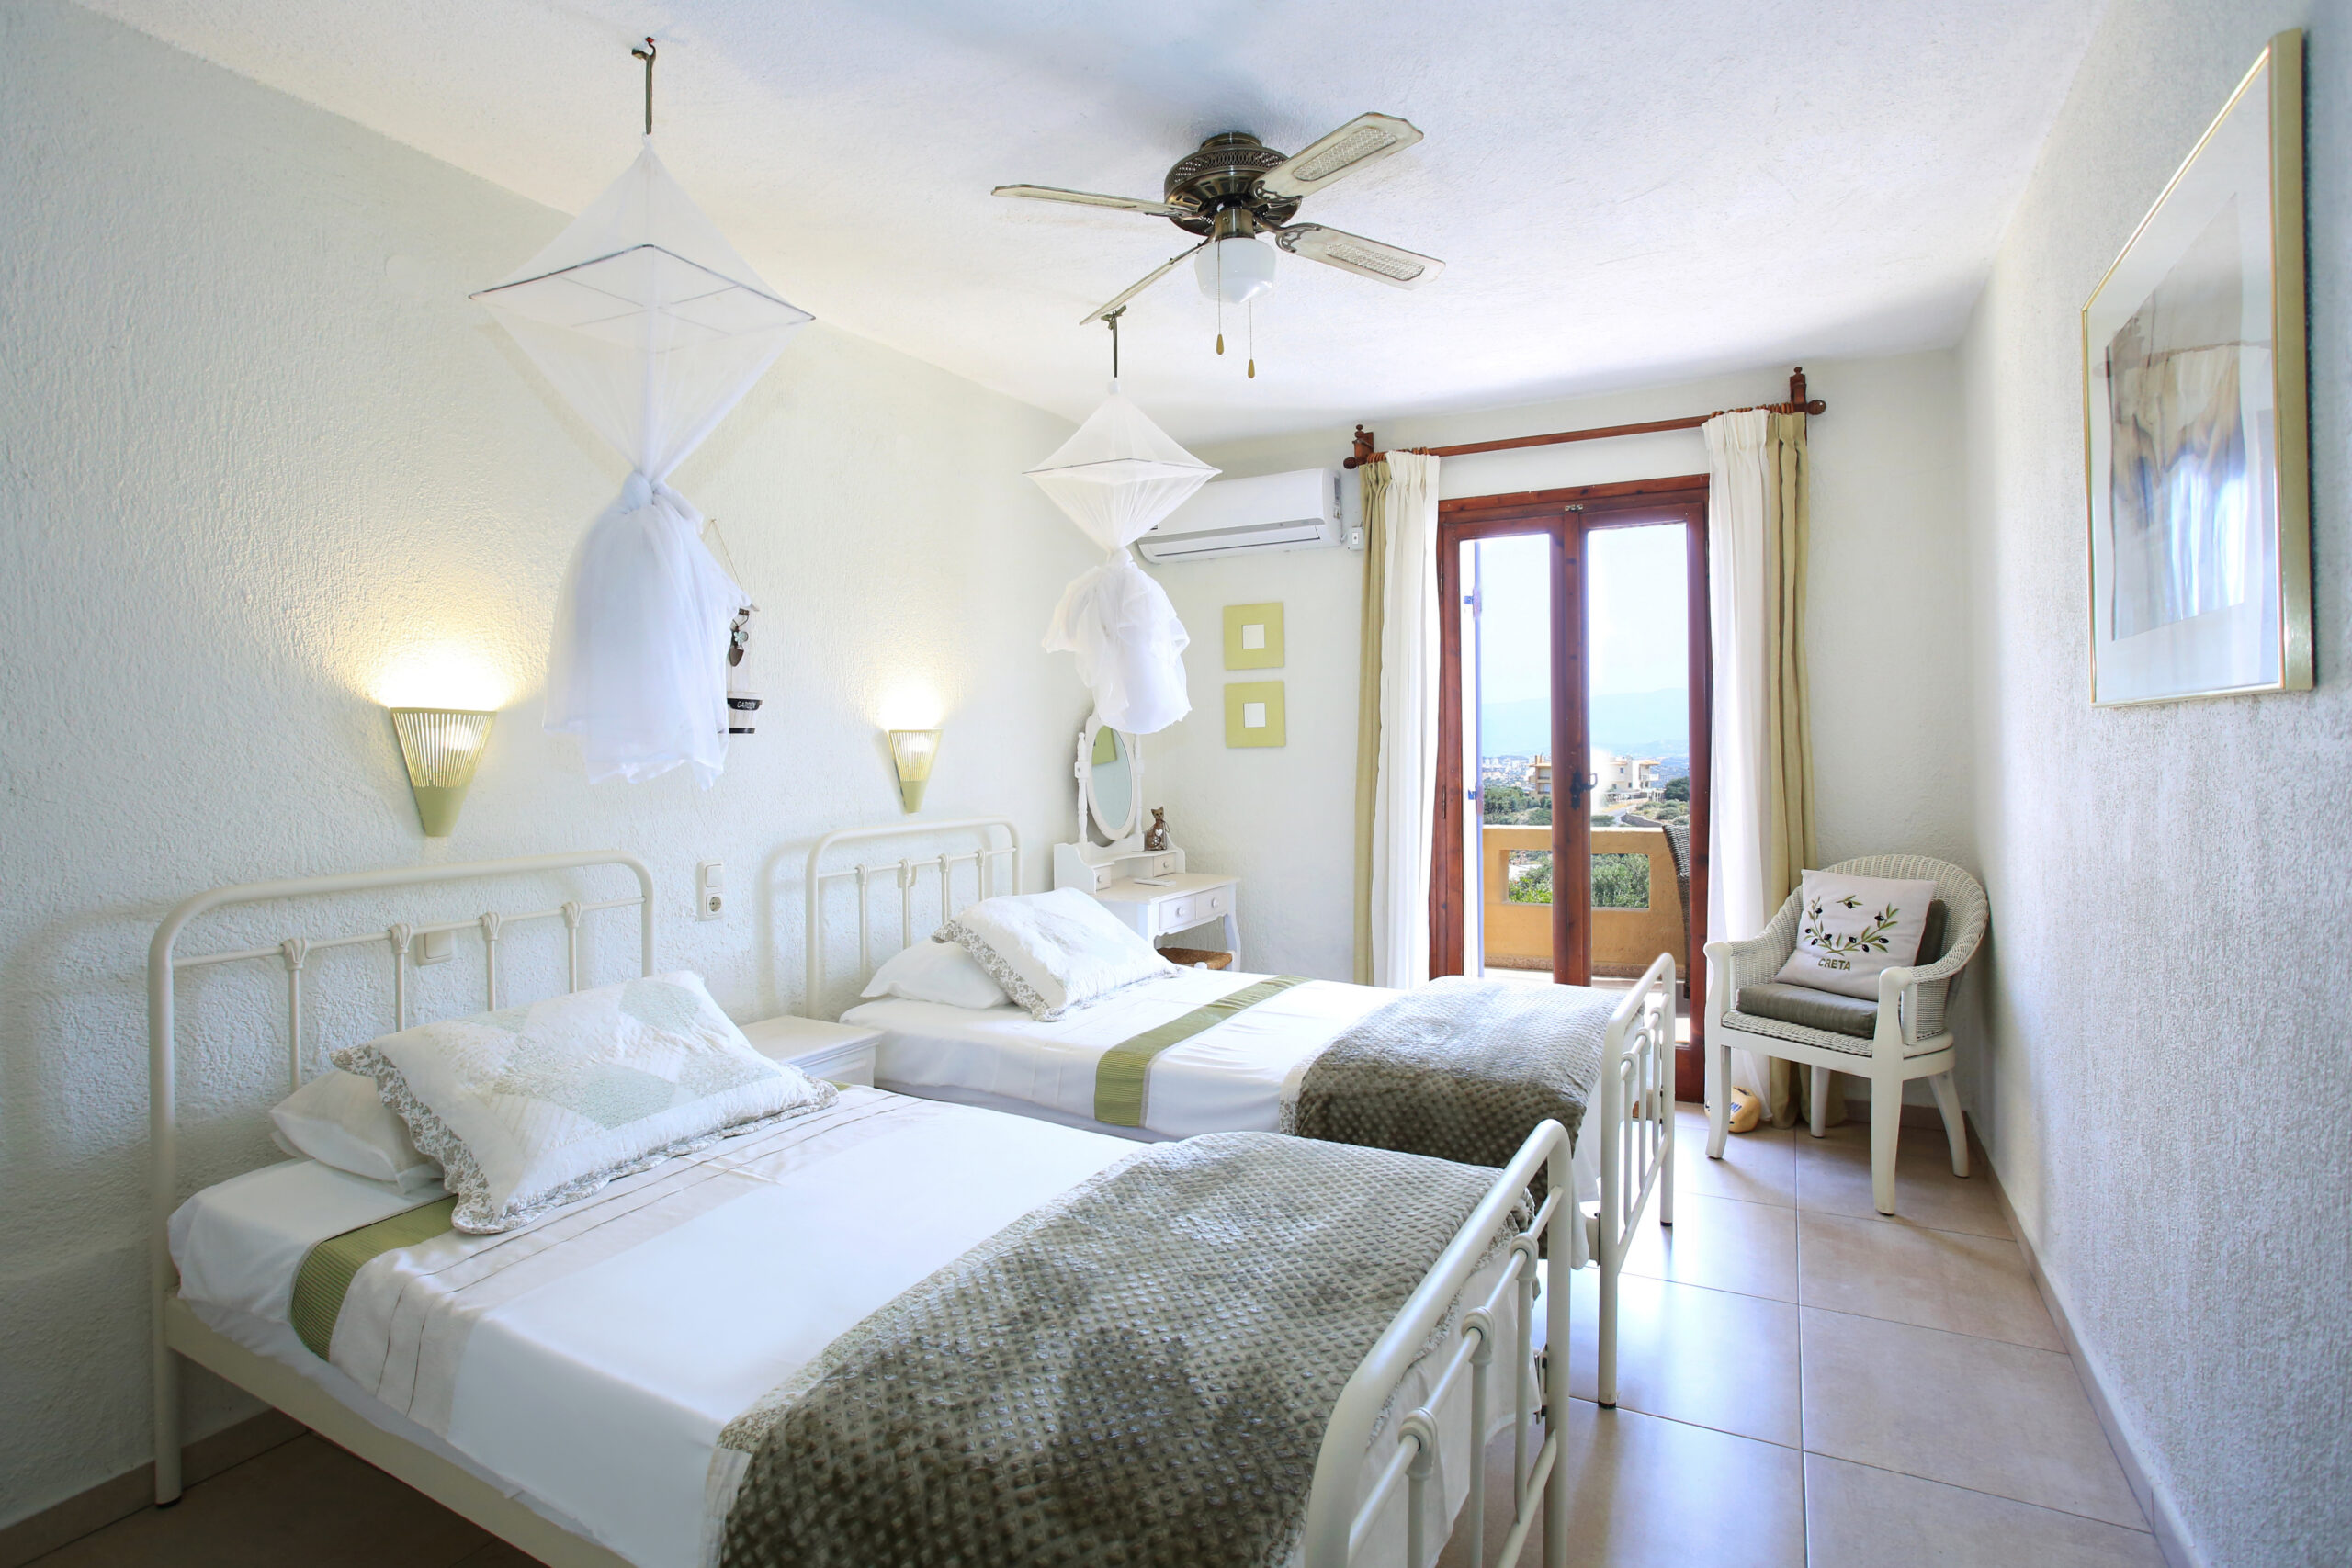 One Bedroom Apartment with Sea View - Villa Galini Apartments Agios Nikolaos, Crete, Greece 5